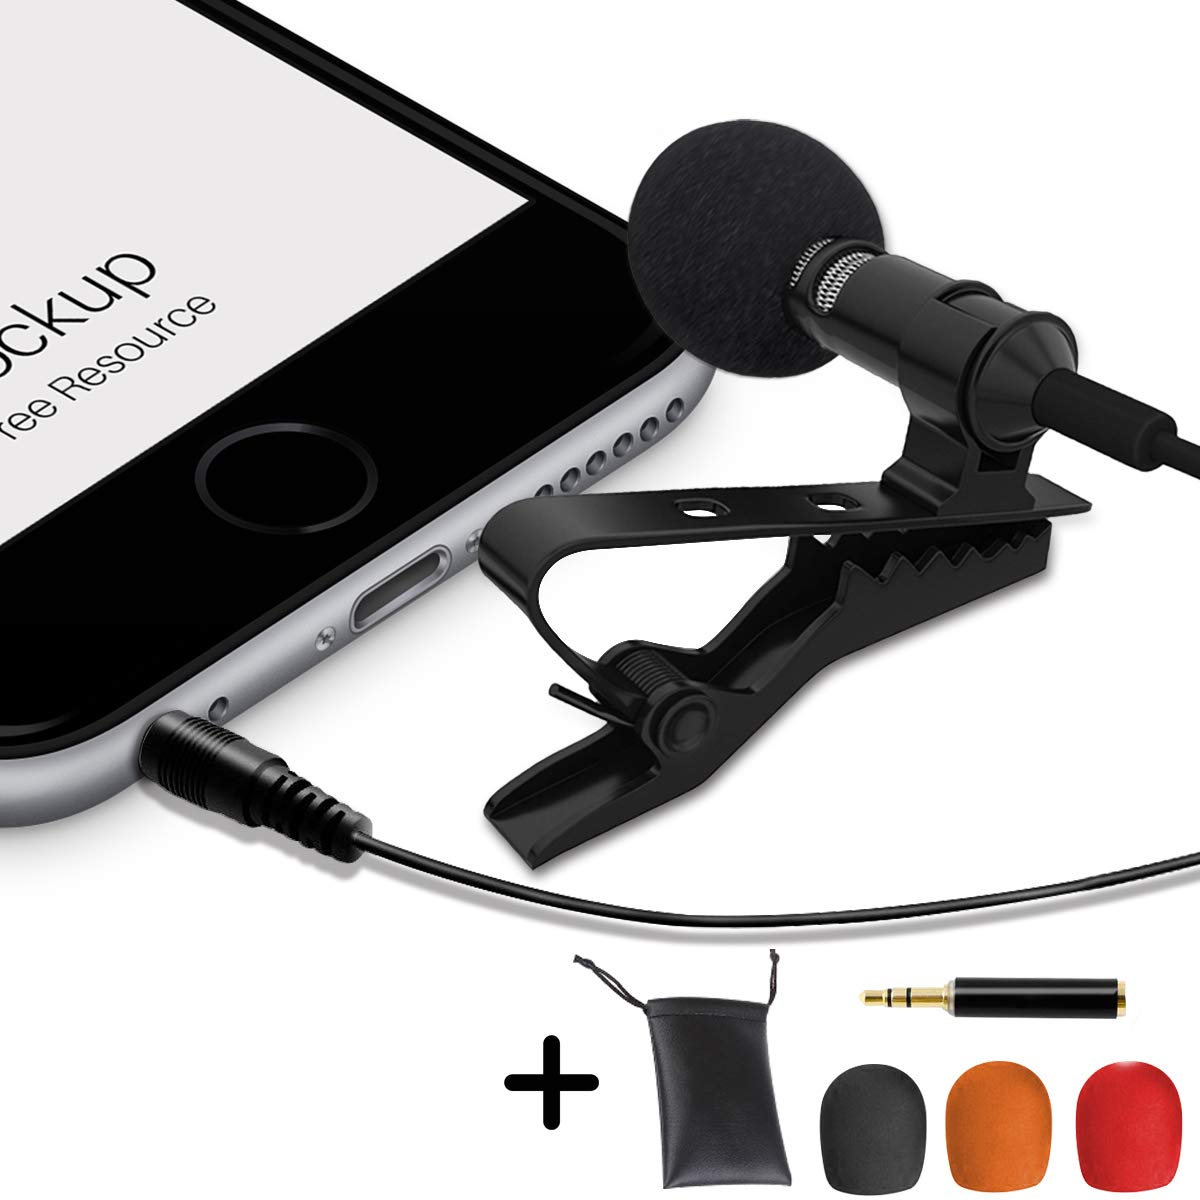 Professional Grade Lavalier Lapel Microphone  Omnidirectional Mic with Easy Clip On System Perfect for Recording Youtube/Interview / Video Conference/Podcast / Voice Dictation/iPhone/ASMR